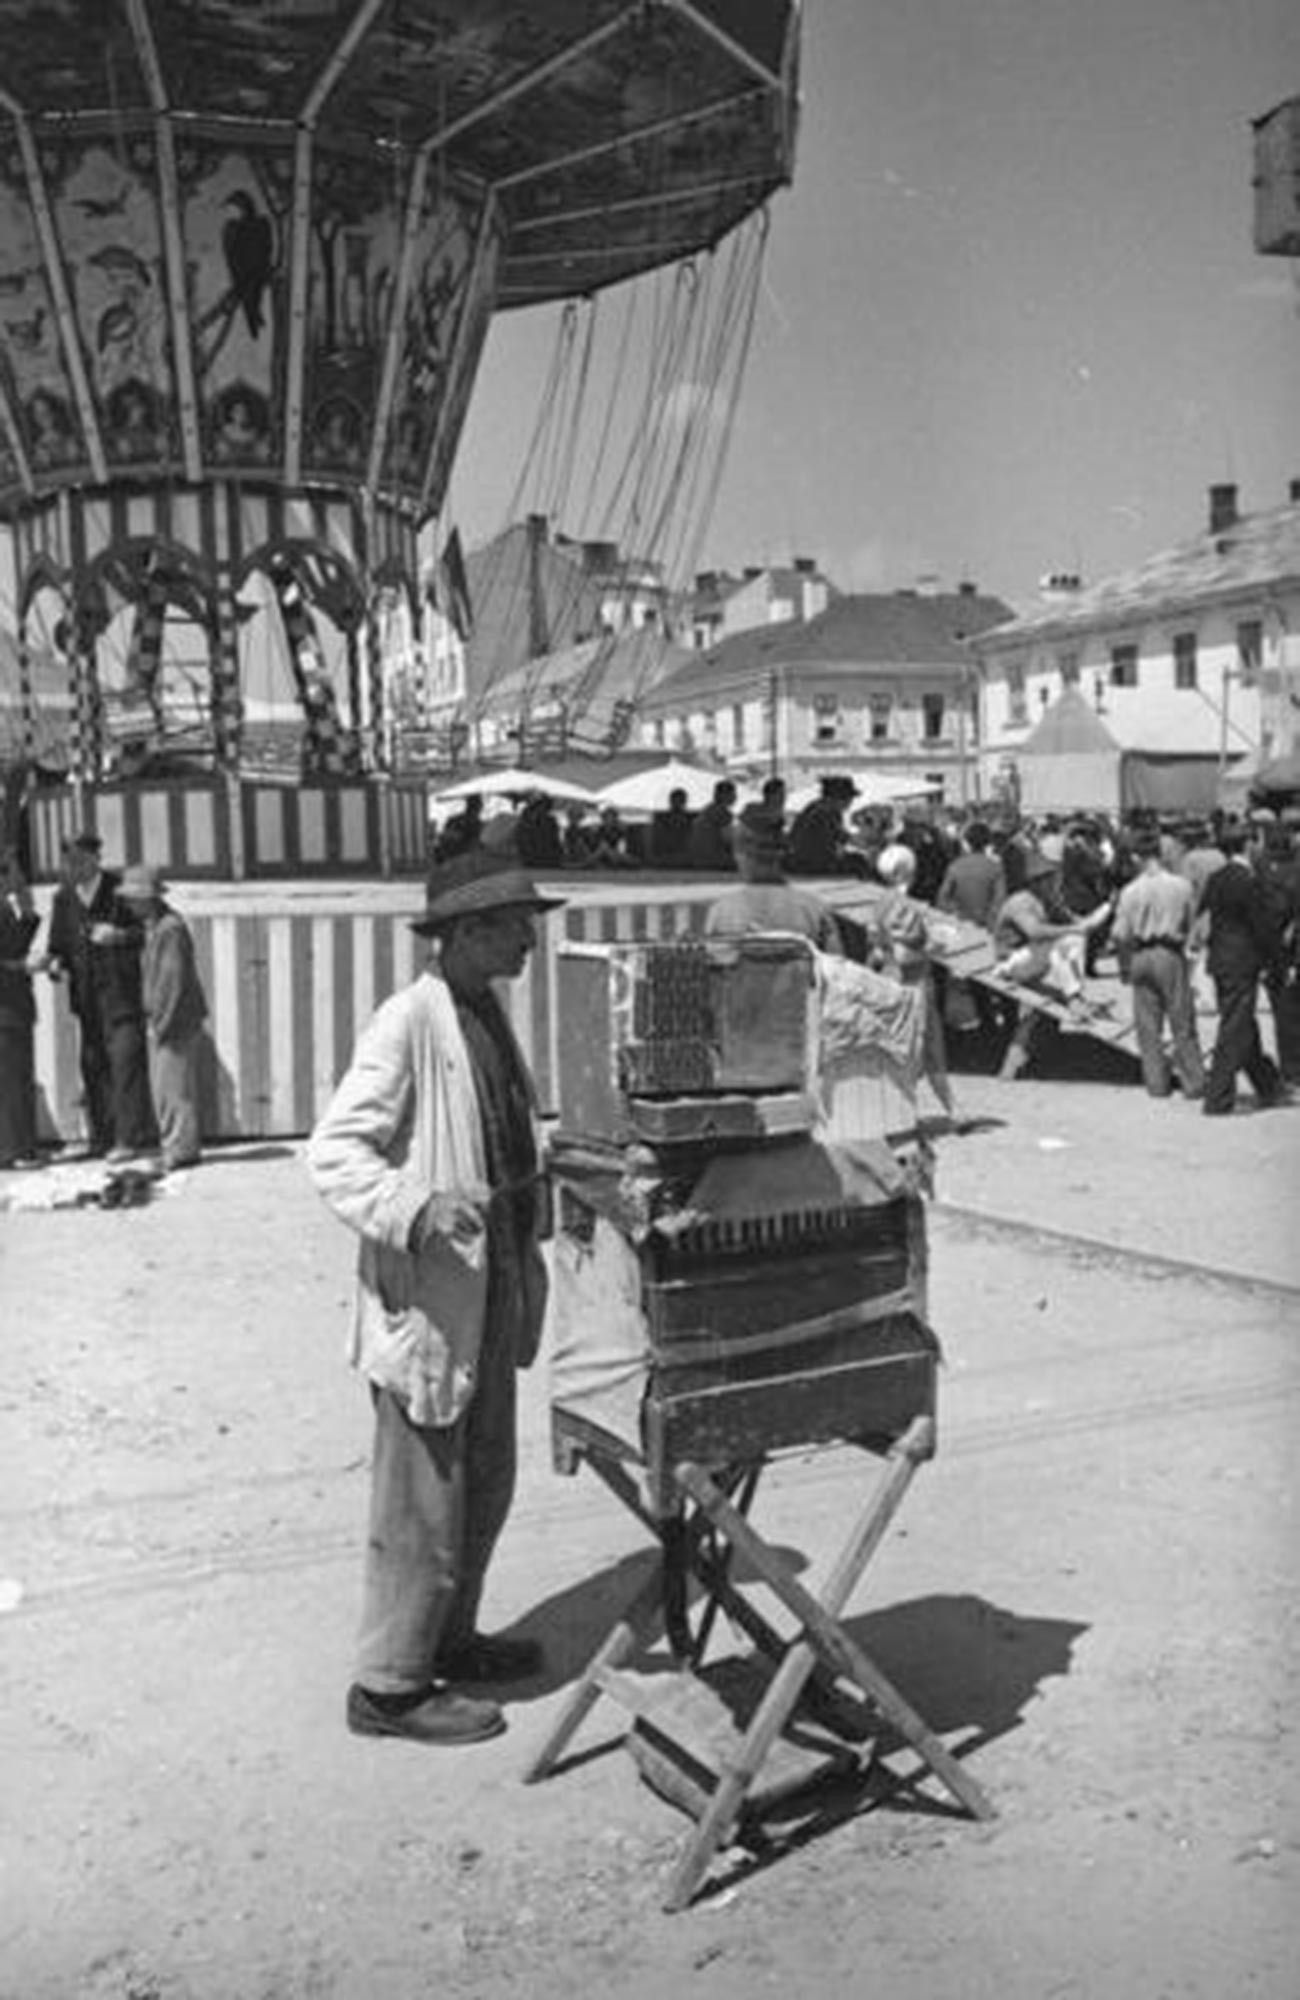 Organ grinder with parrot at a fair in the city of Chernivtsi, 1940